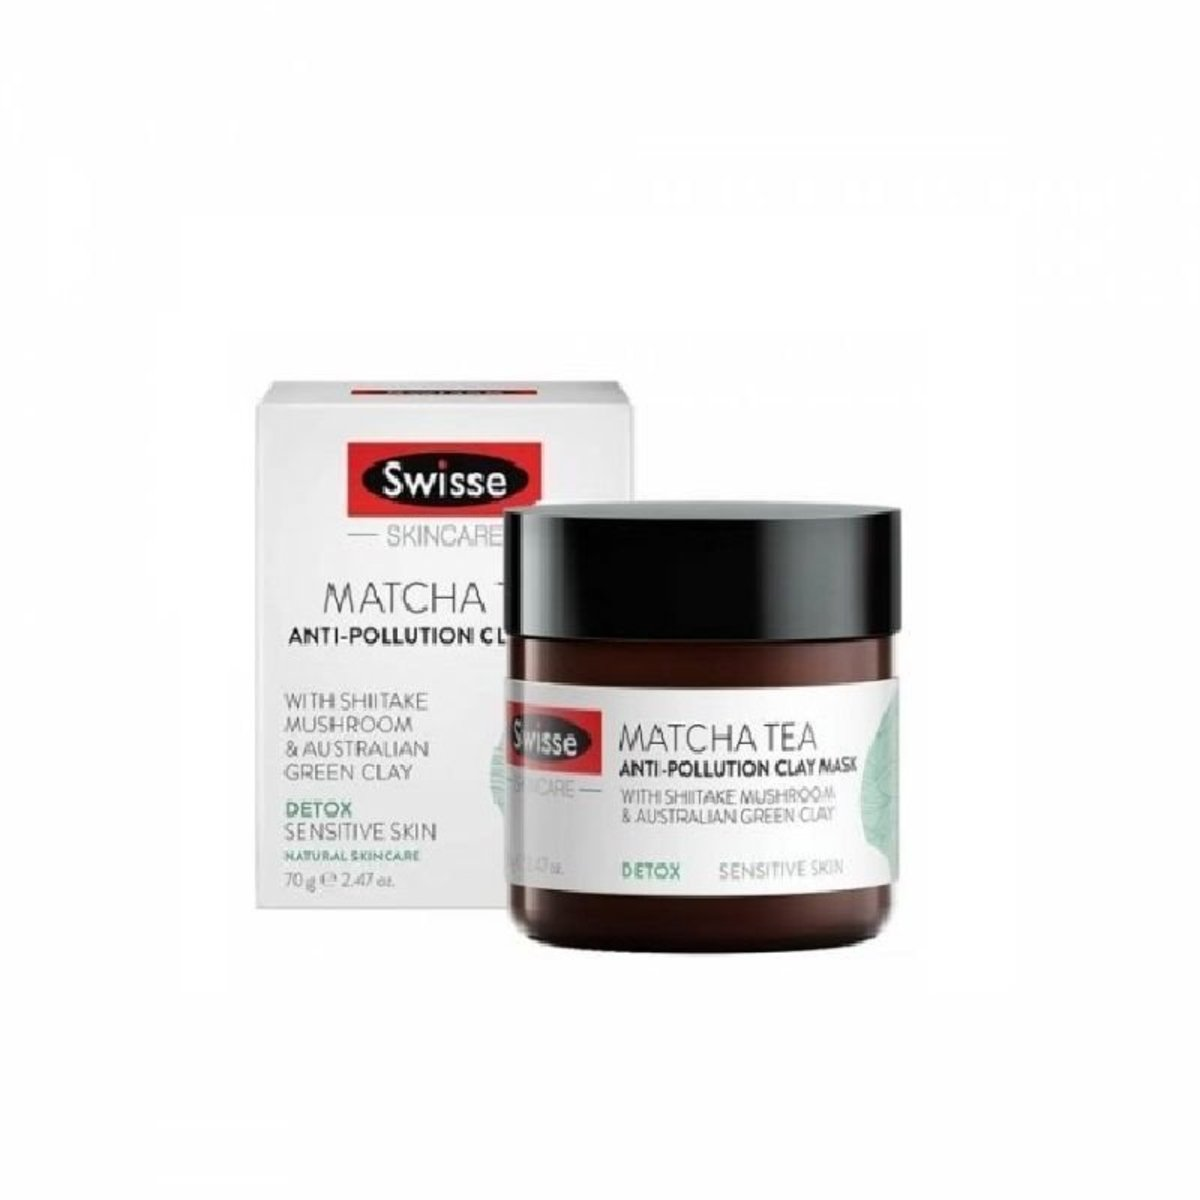 Matcha Tea Anti-Pollution Clay Mask(Parallel import)